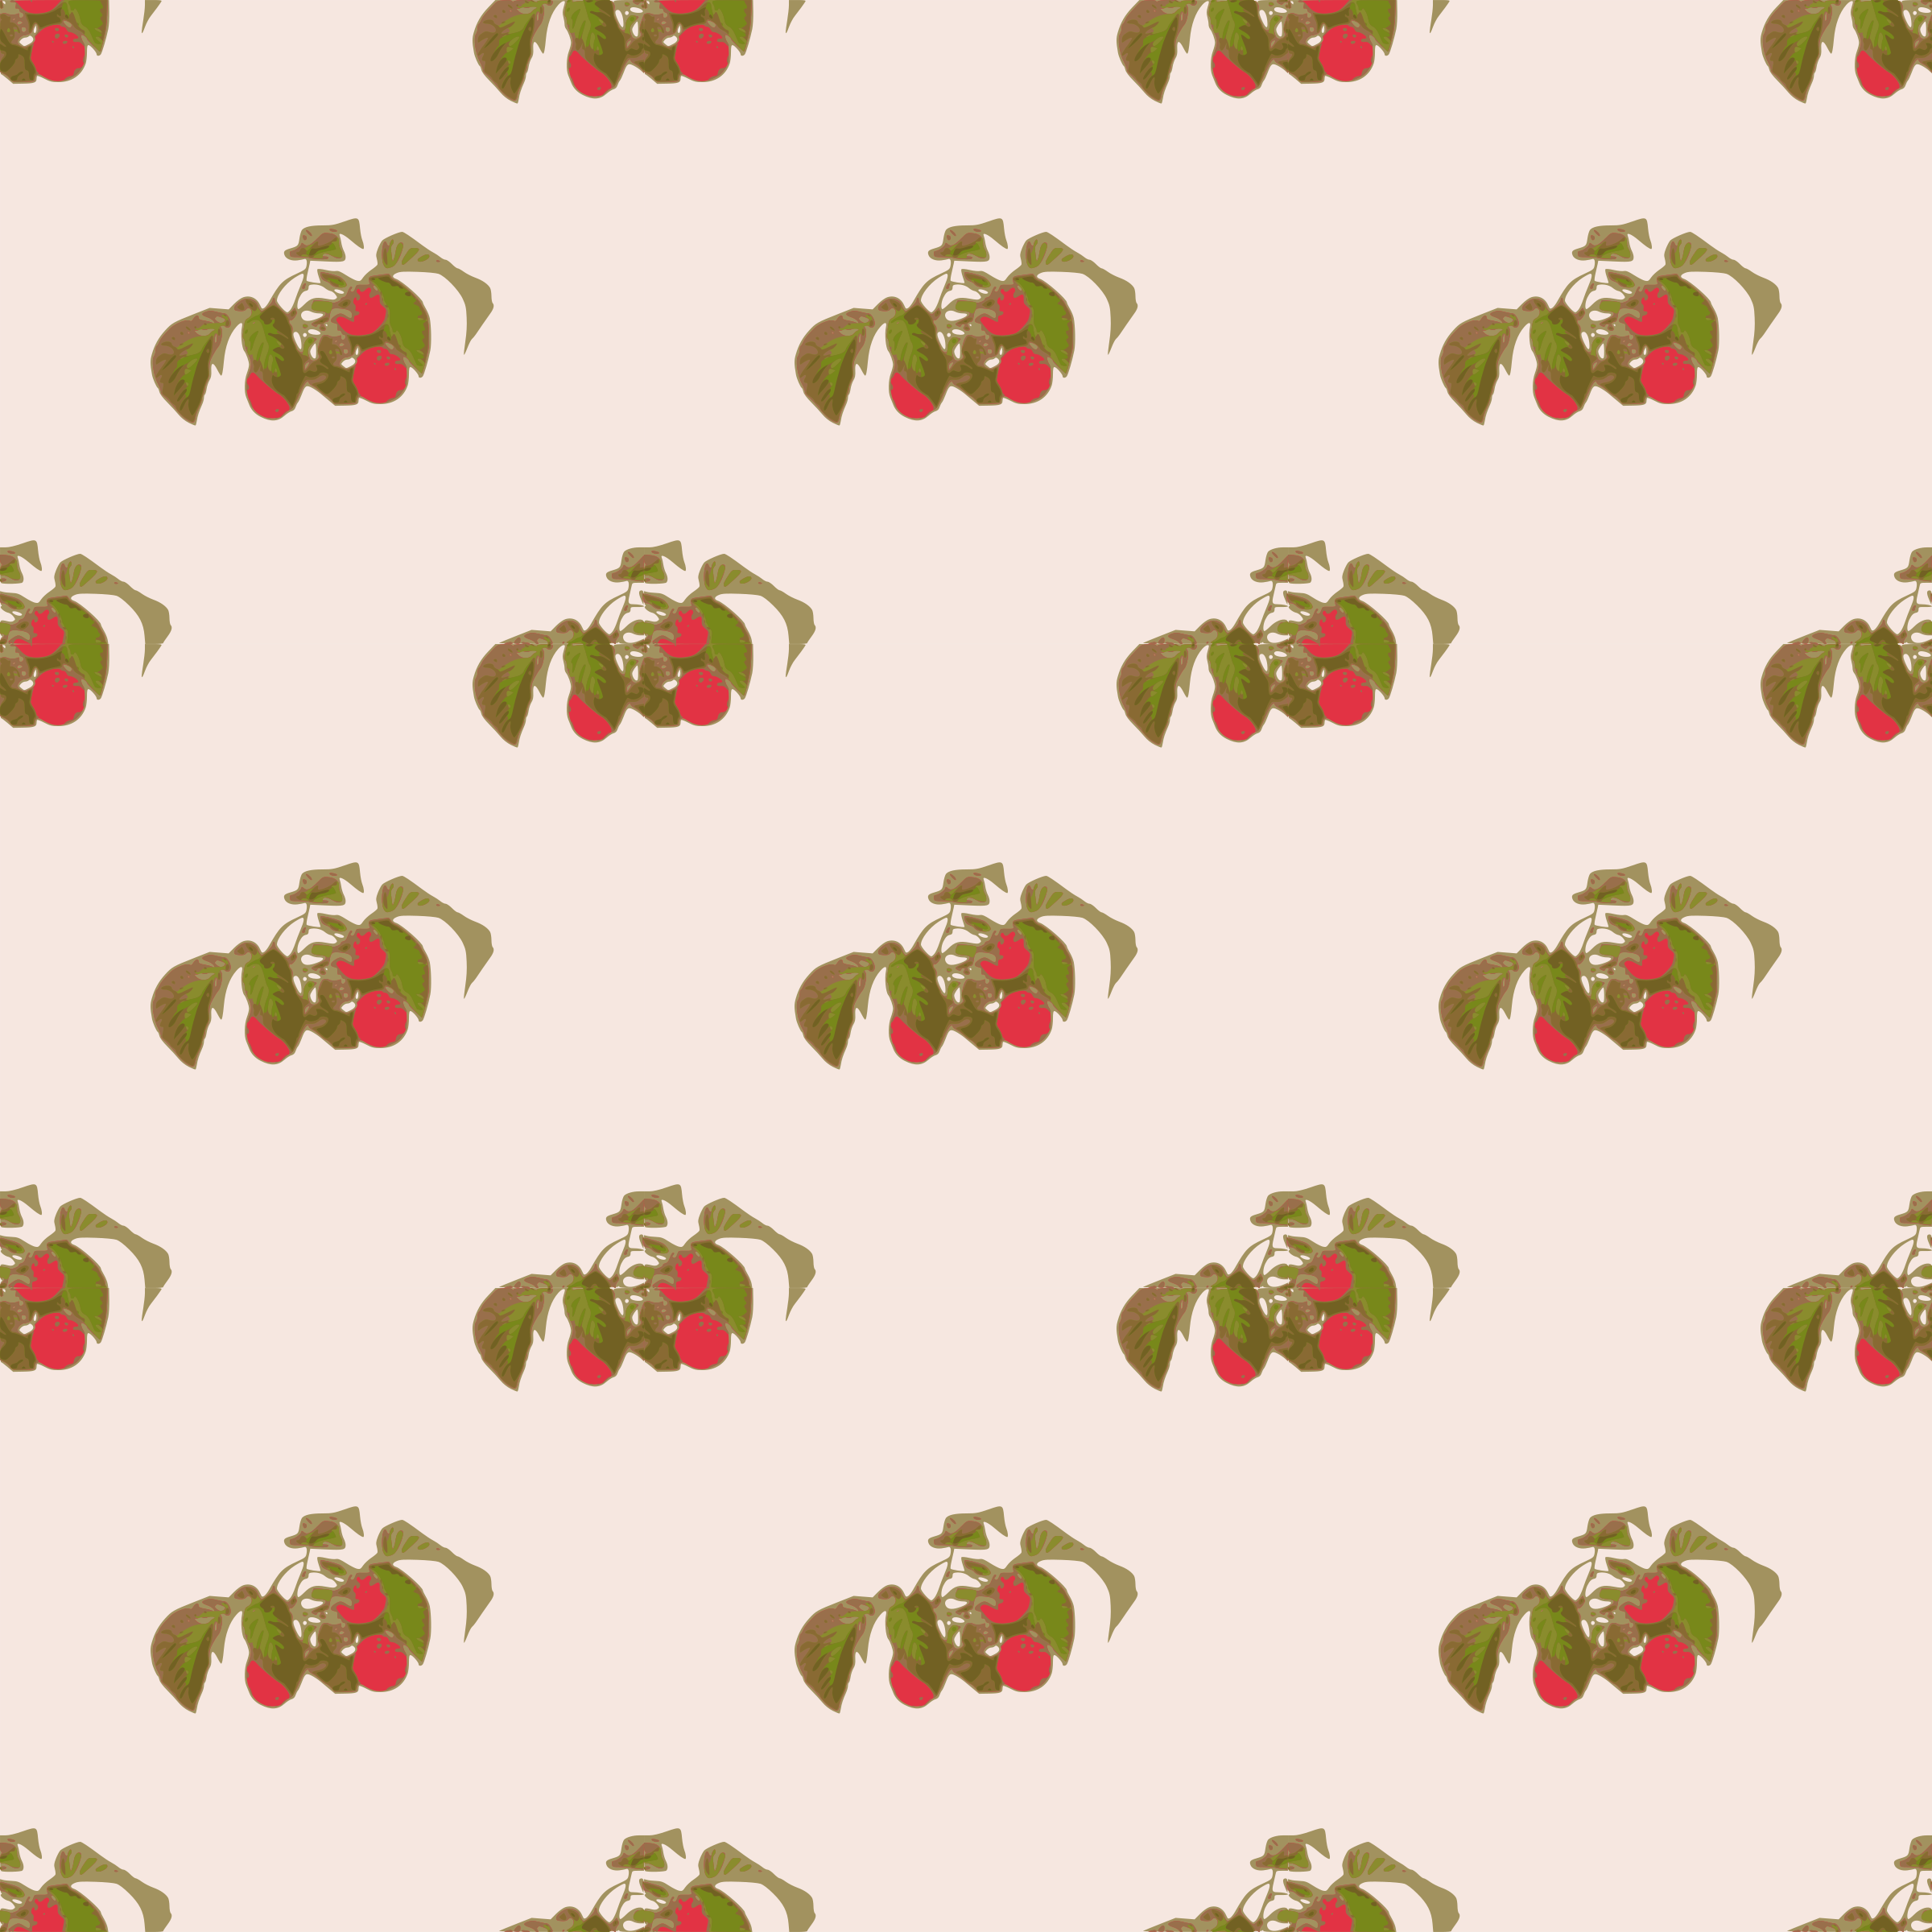 Raspberry-seamless pattern by yamachem